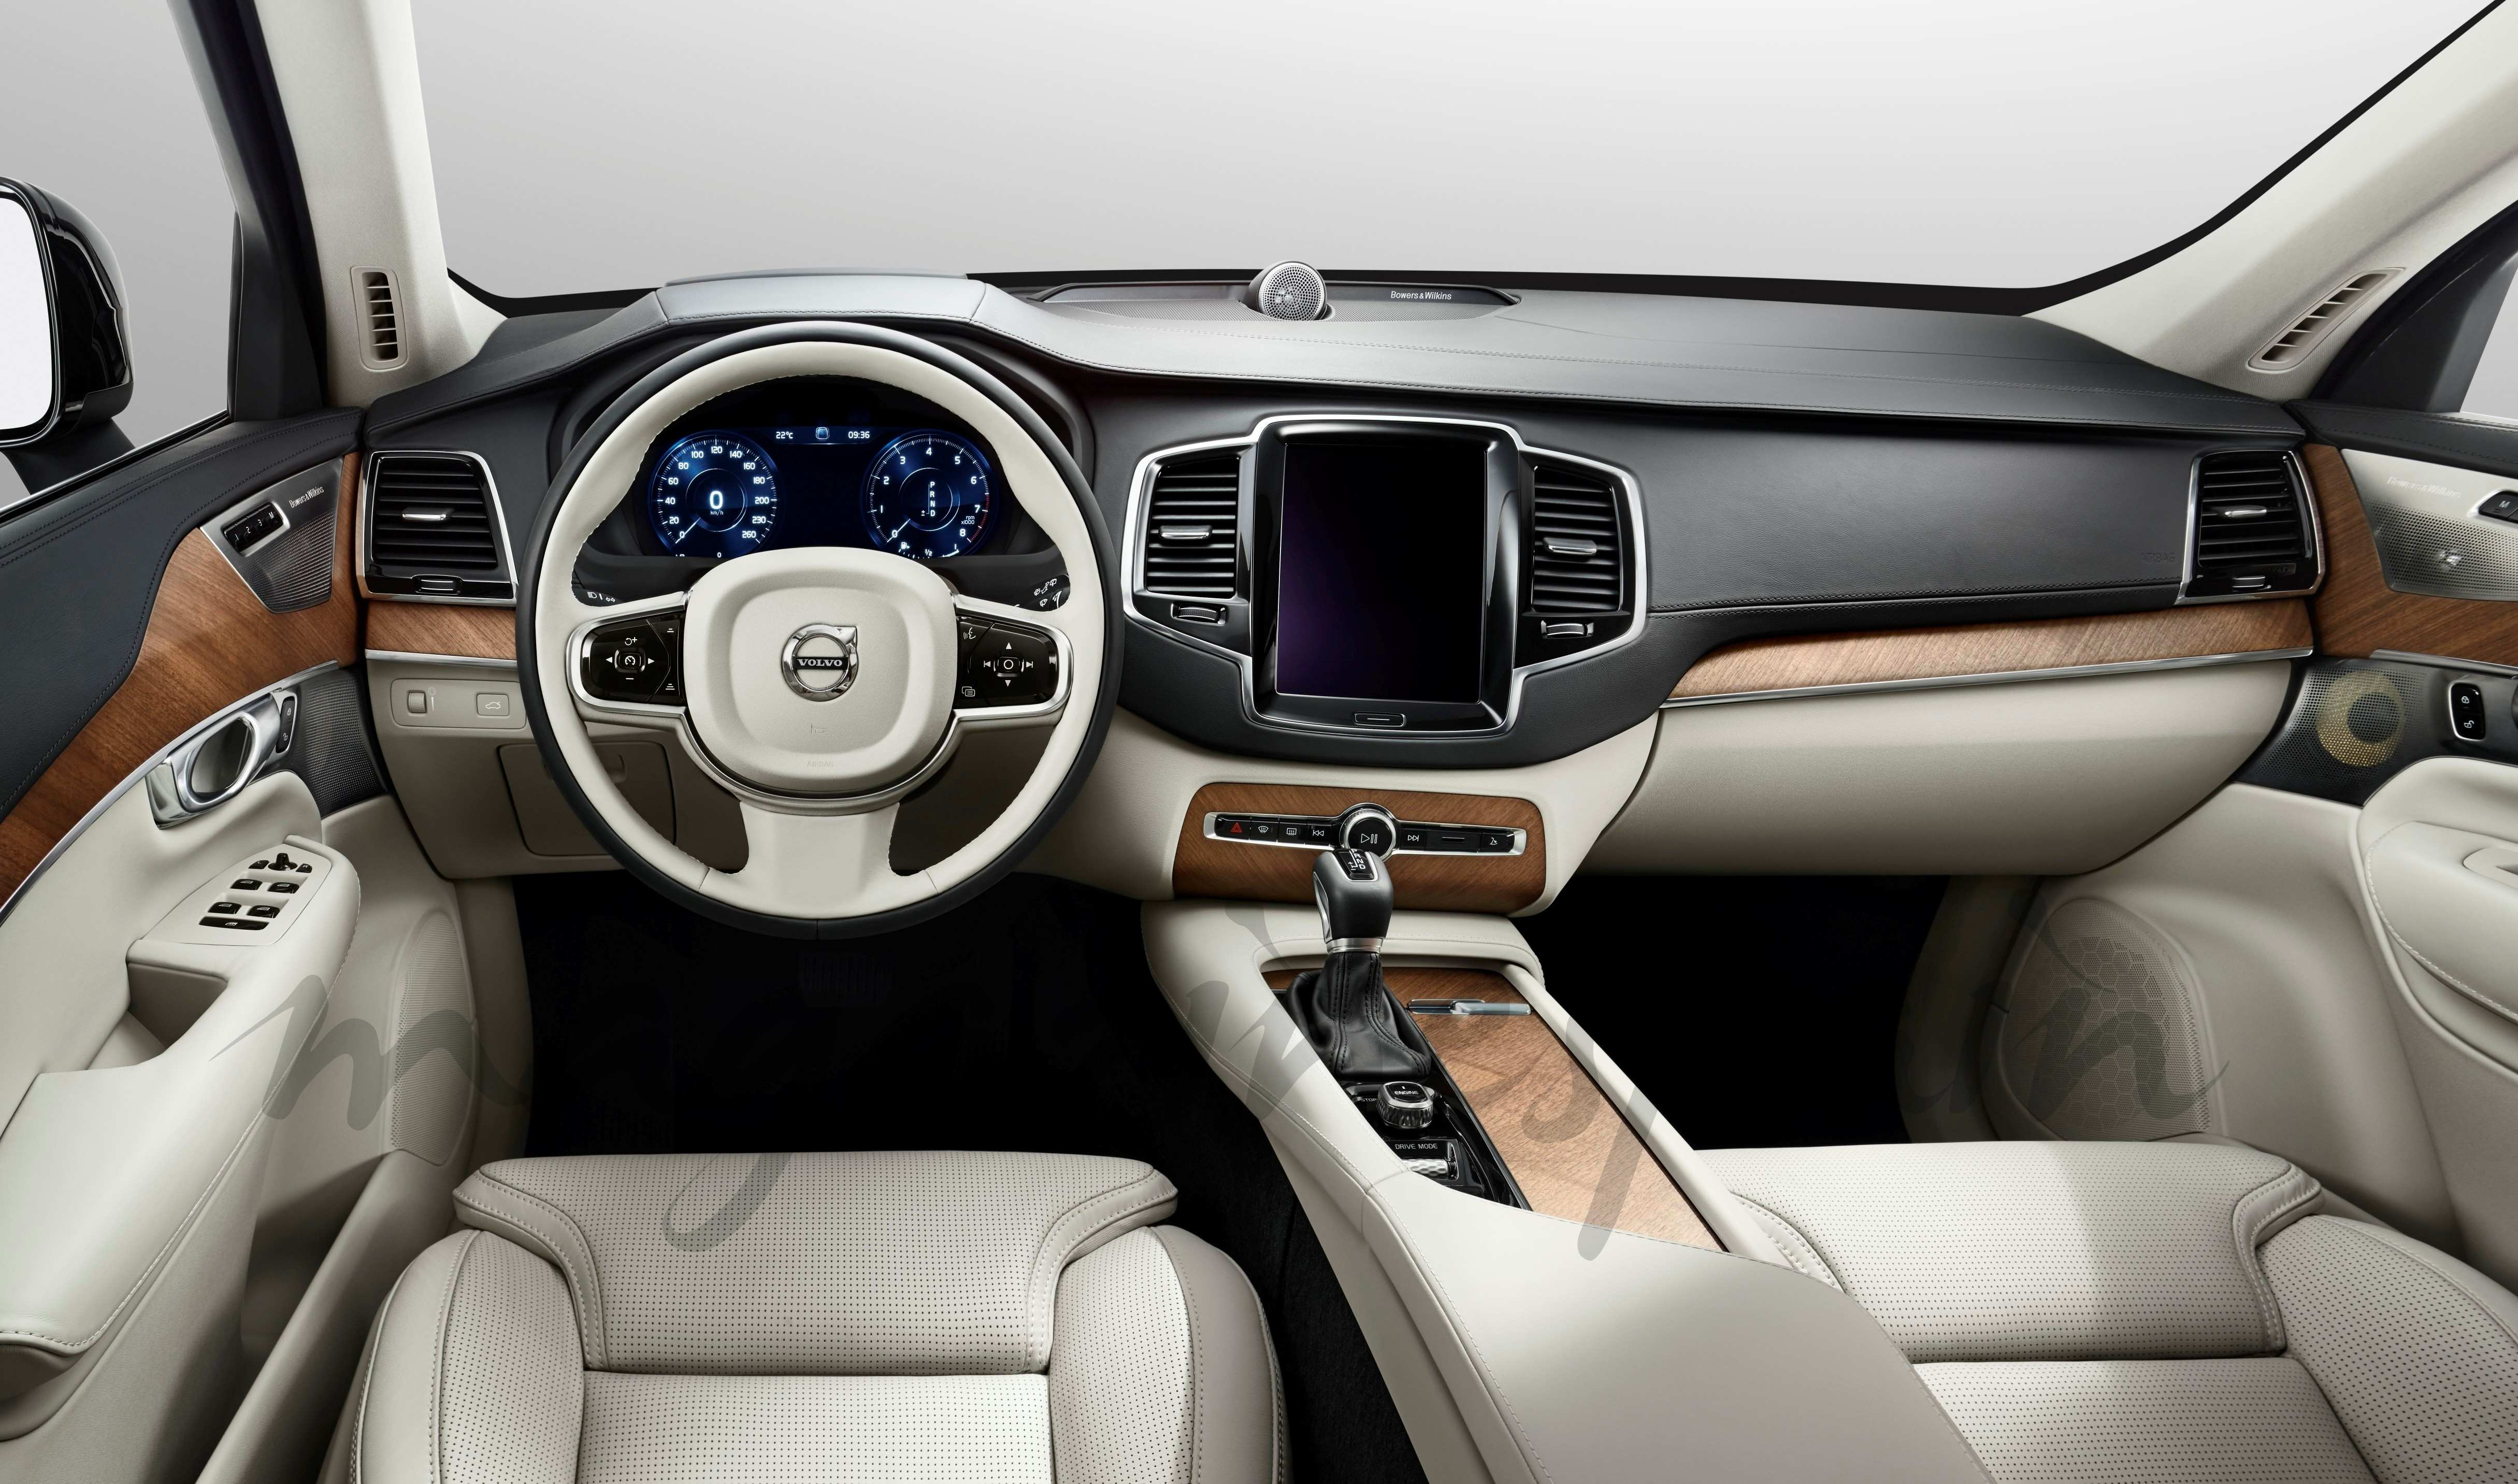 83 All New Volvo To Go Electric By 2019 Wallpaper